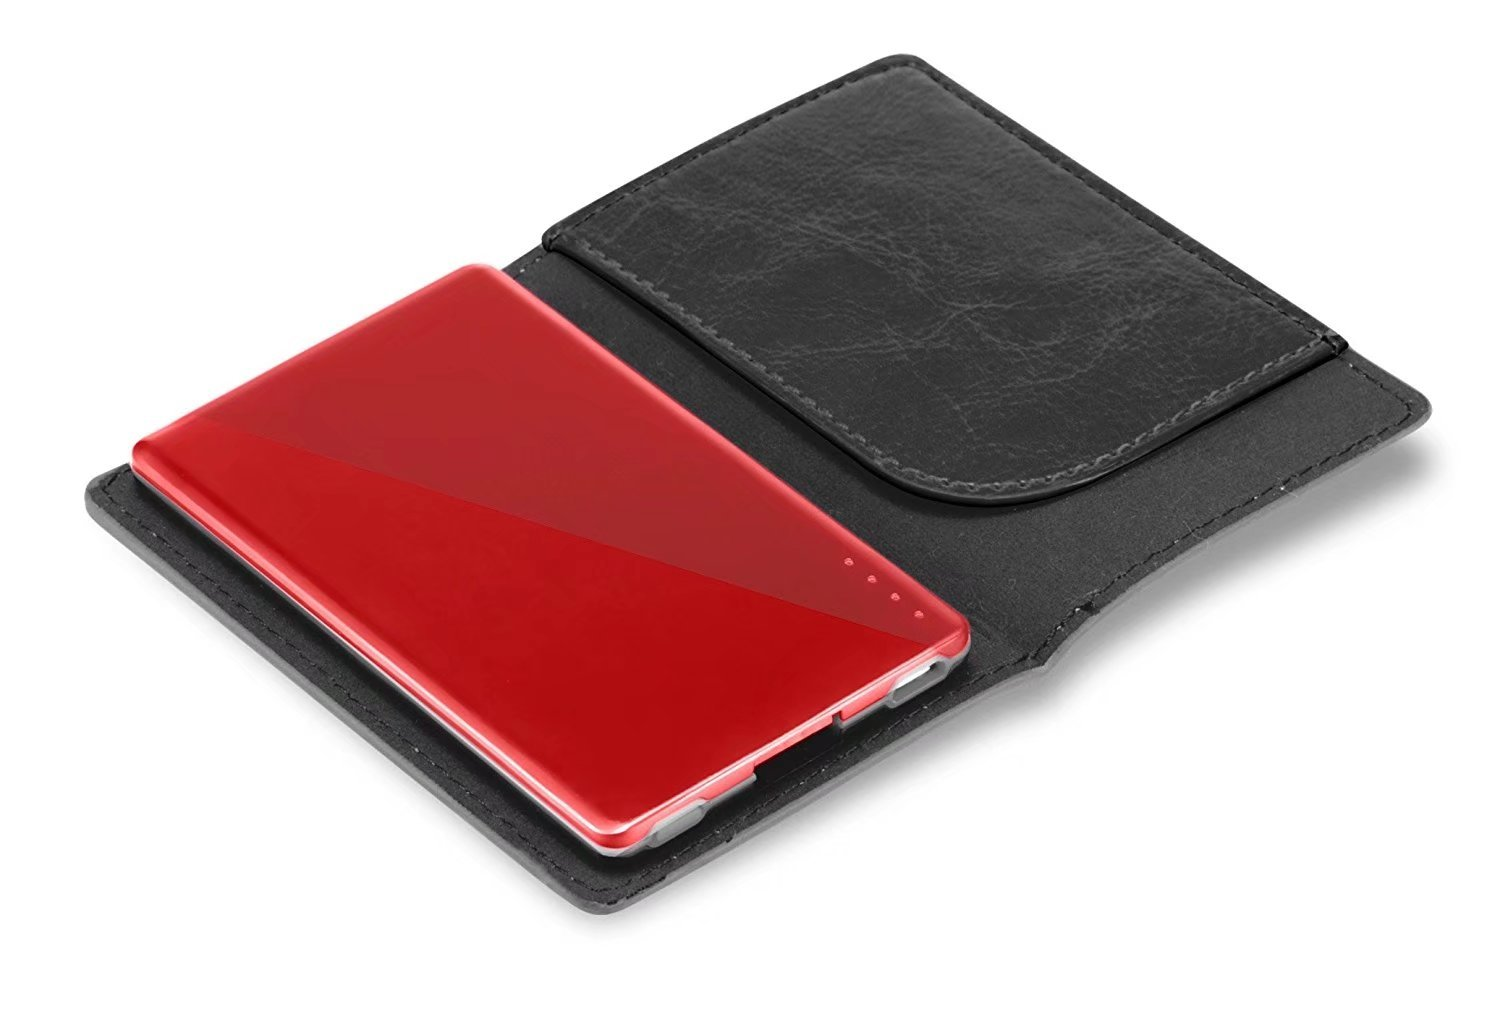 The world's thinest credit card sized portable charger power bank - 2200mAh - with a business card/bank card slot leather pouch coming together .BUB75